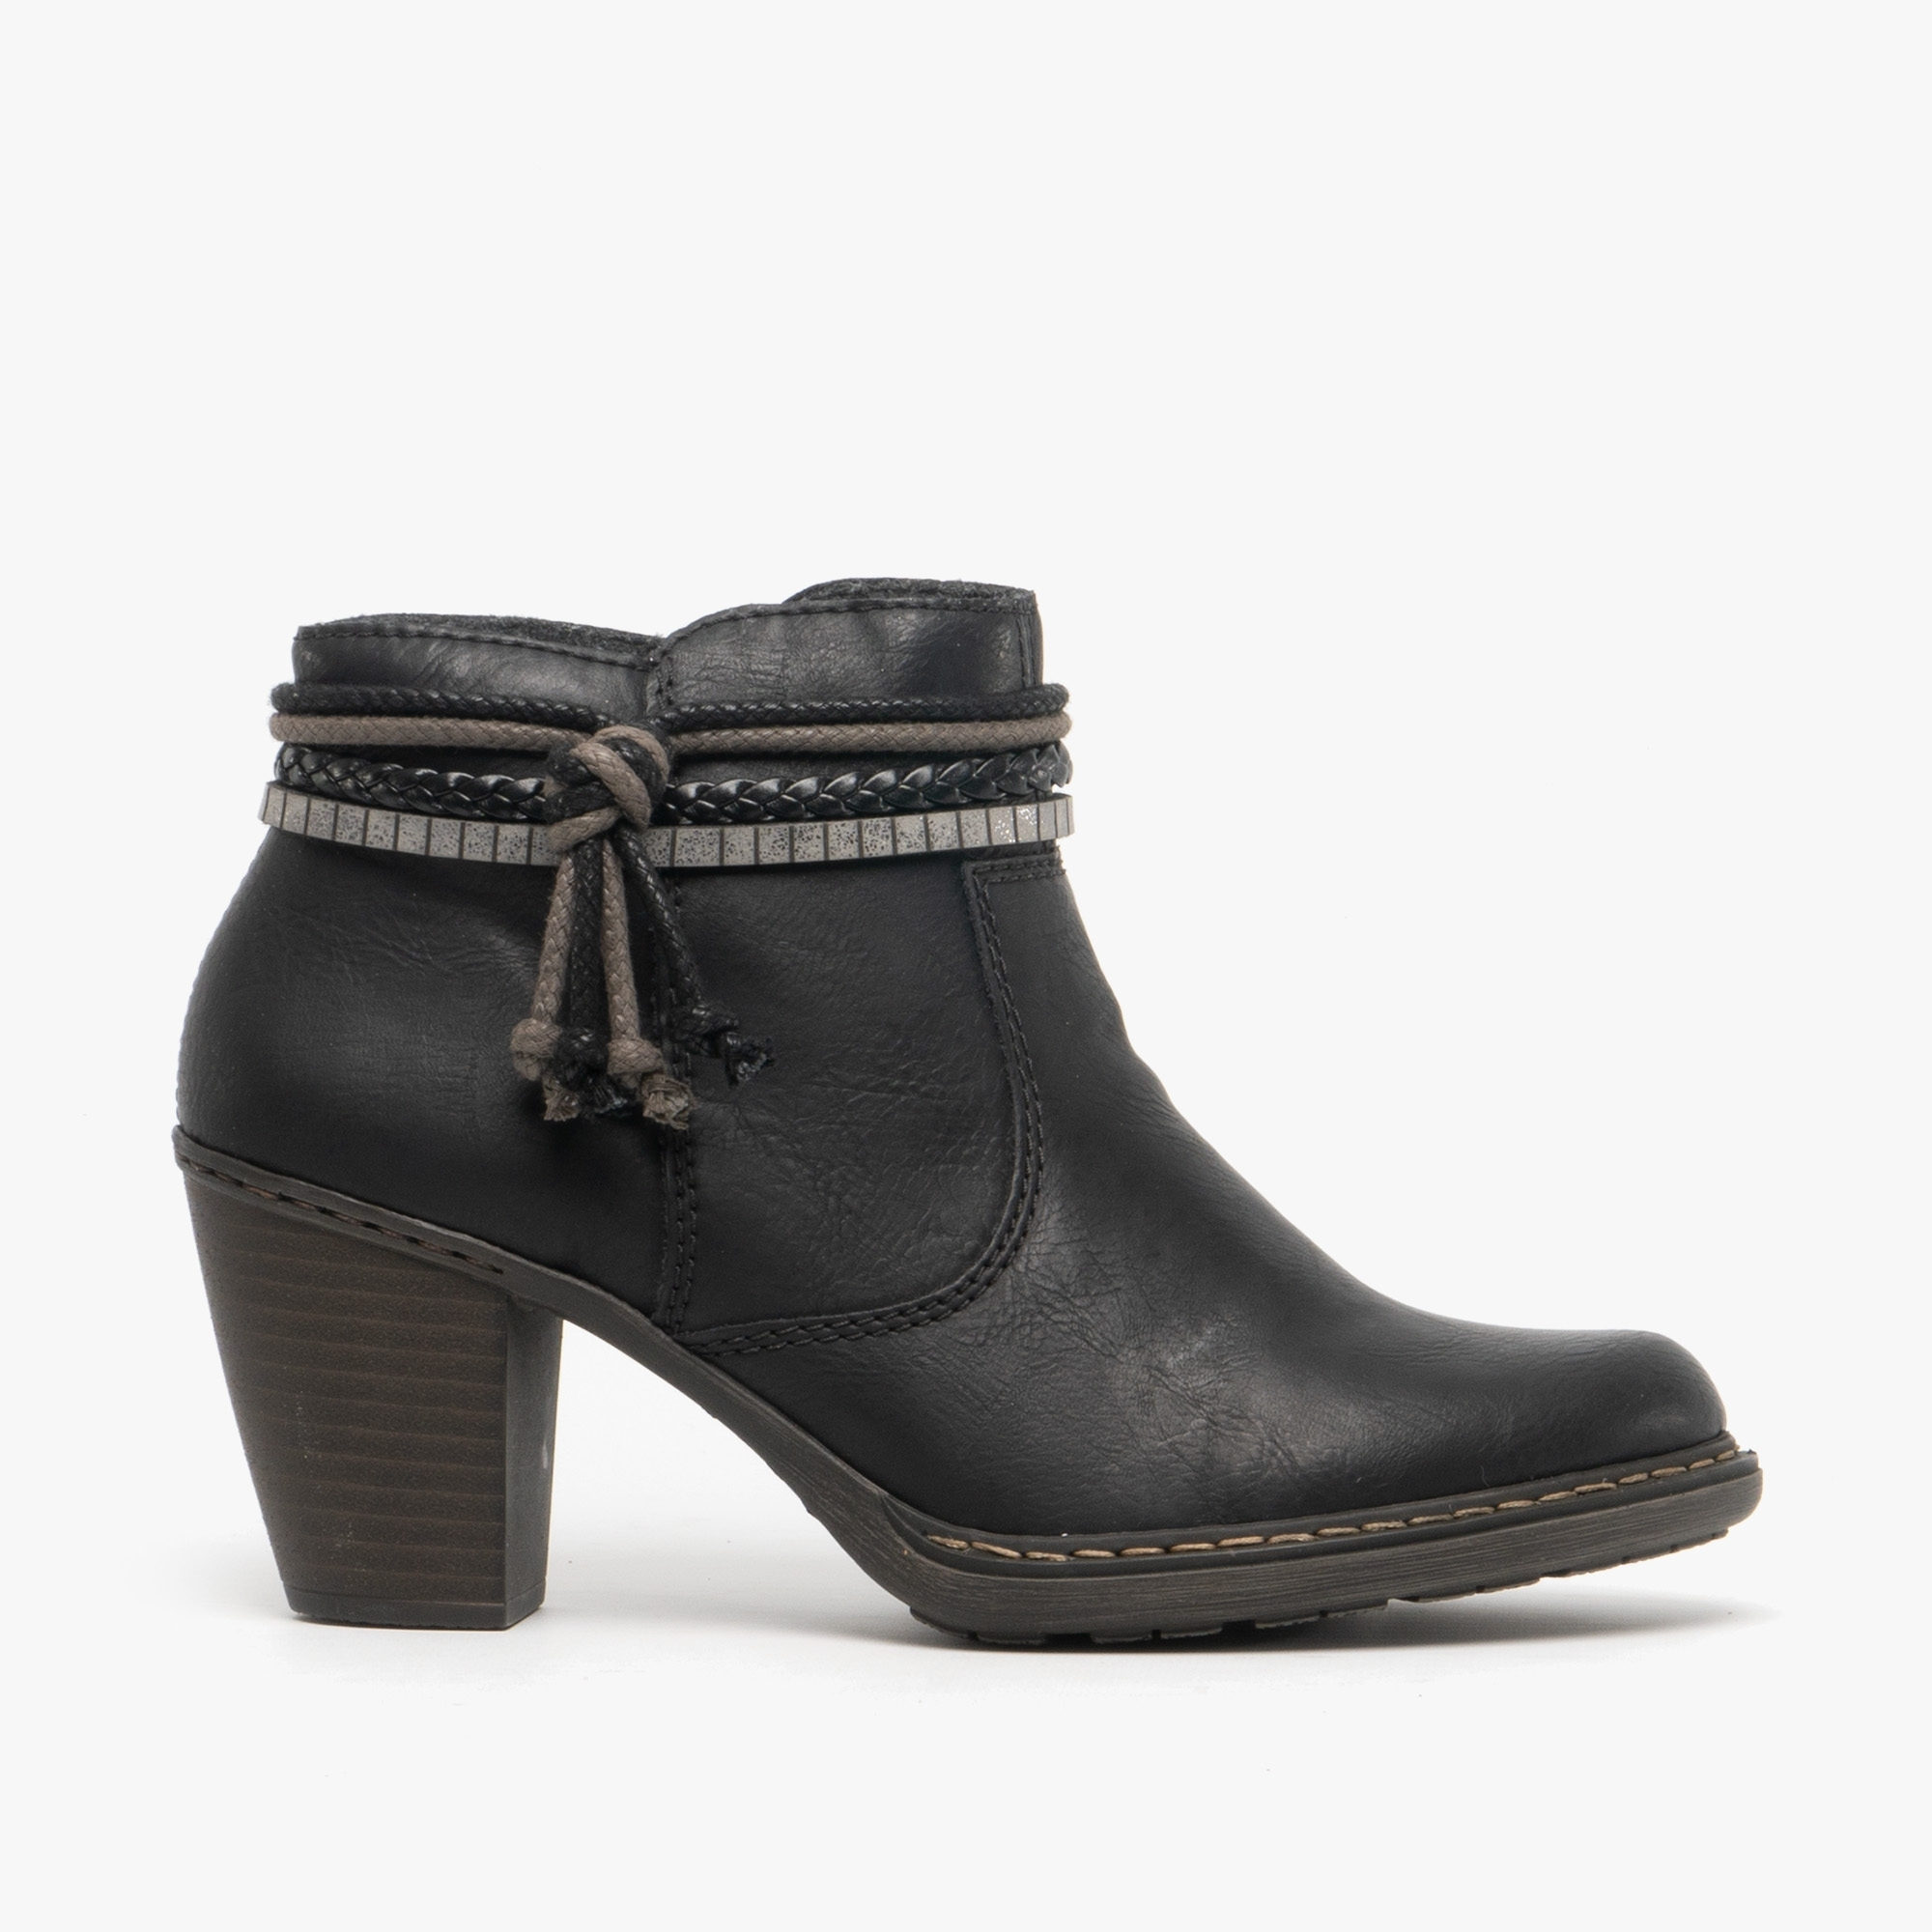 Rieker 70562 Ladies Black Leather Zip Up And Stitch Detail Heeled Ankle Boots